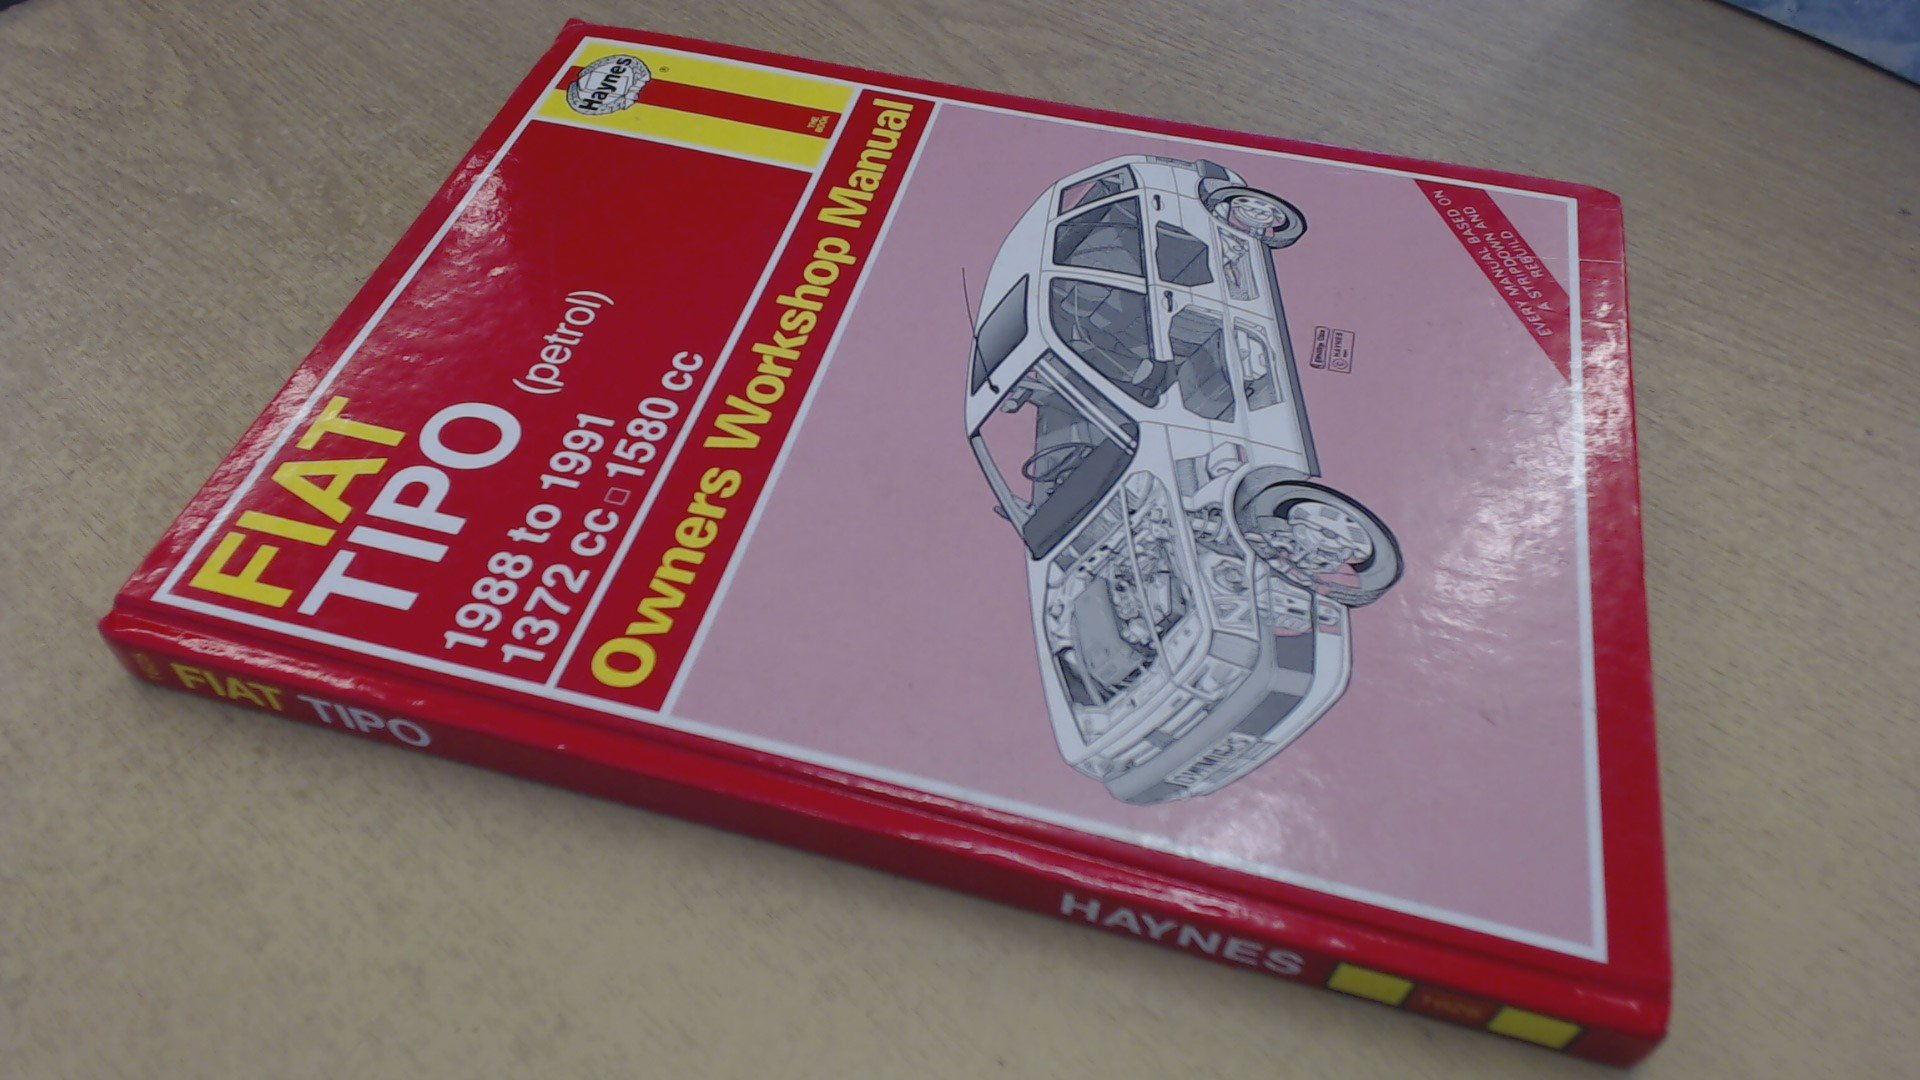 Fiat Tipo Owners Workshop Manual 1988 to 1991(Haynes Owners Workshop Manuals):  Amazon.co.uk: Steve Rendle: 9781850106258: Books